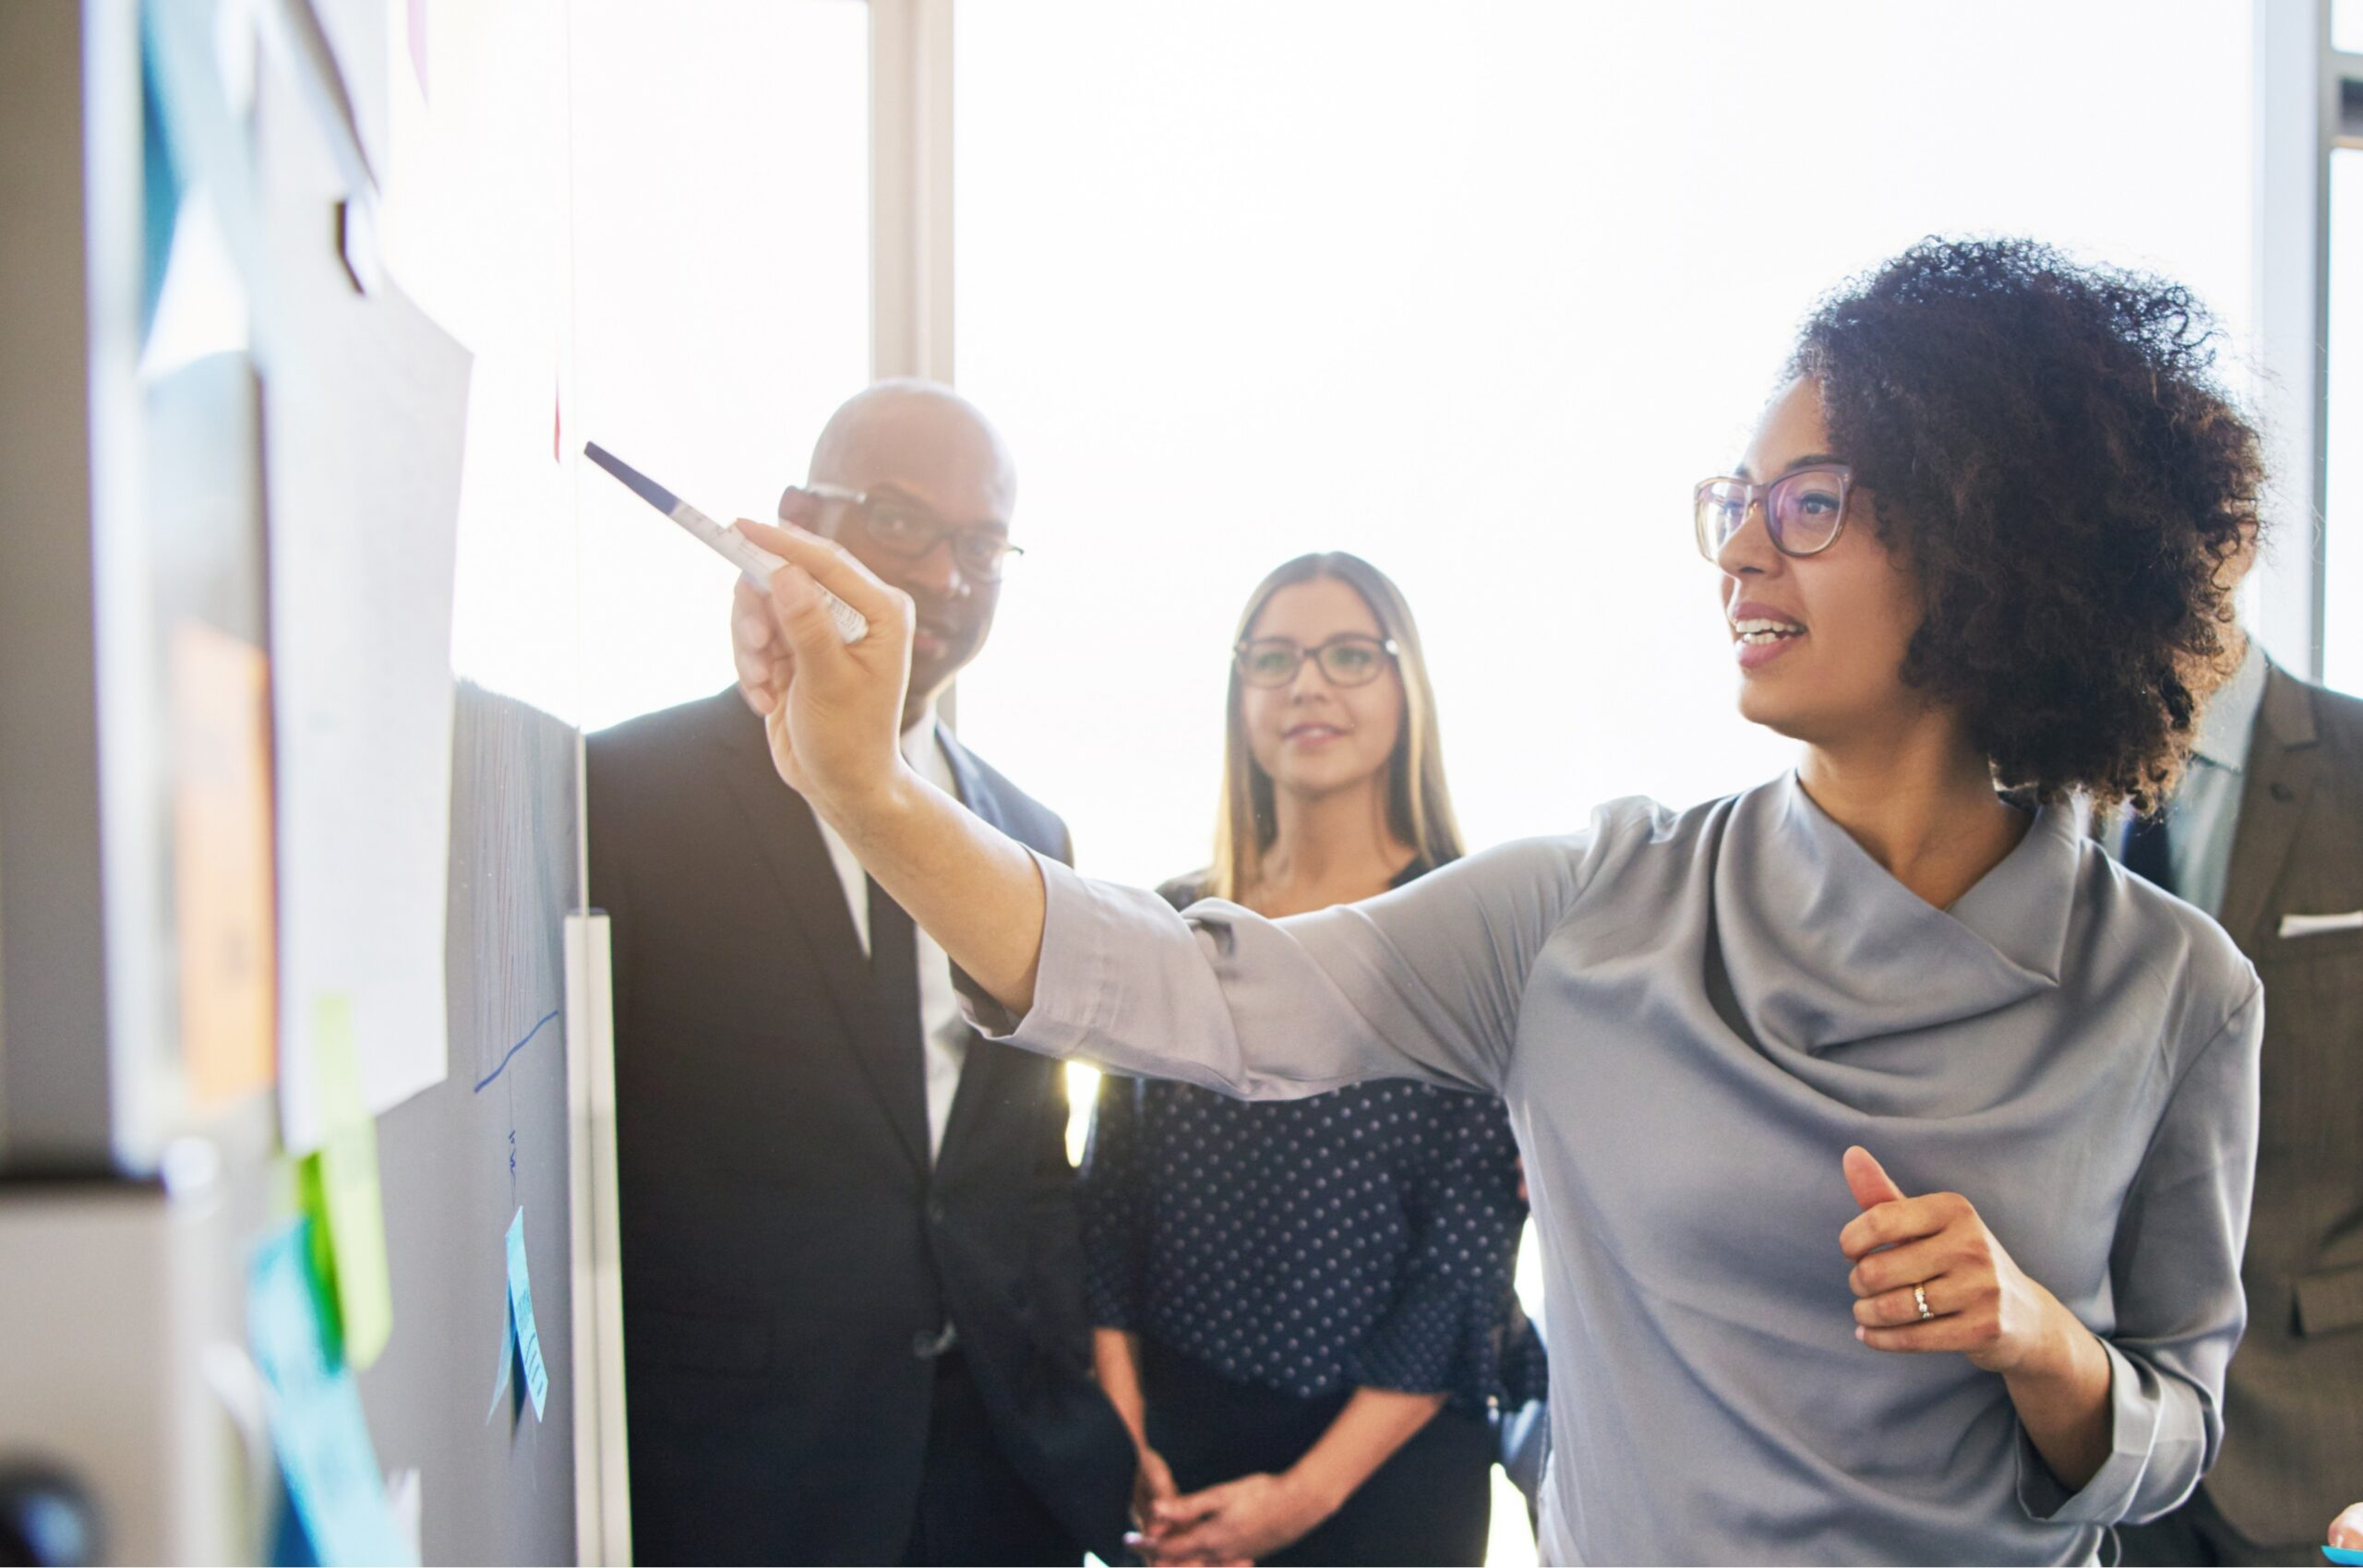 Emotional intelligence: Image of a female executive pointing with a pen at sticky notes leading a discussion with three other colleagues